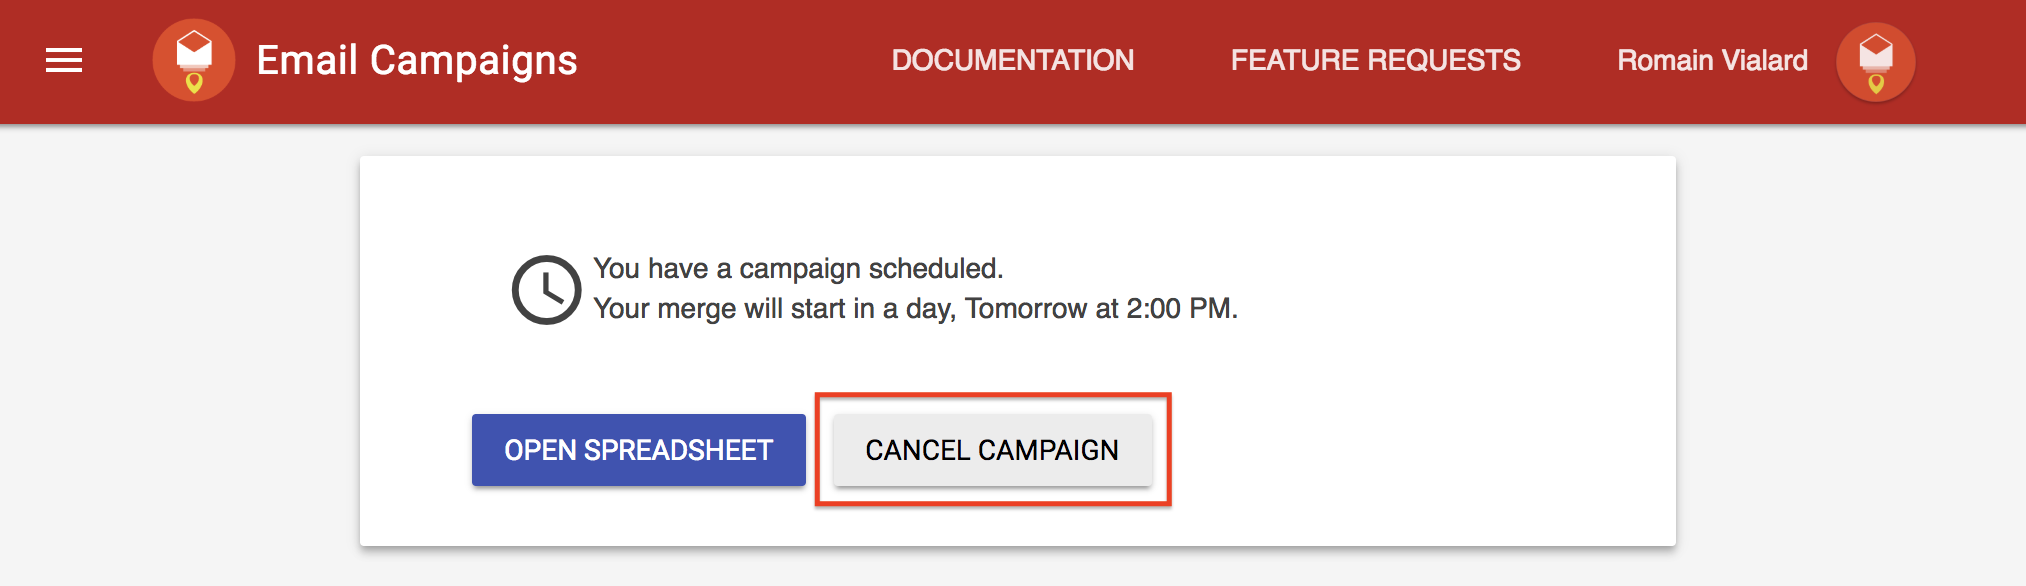 cancel_scheduled_campaign.png